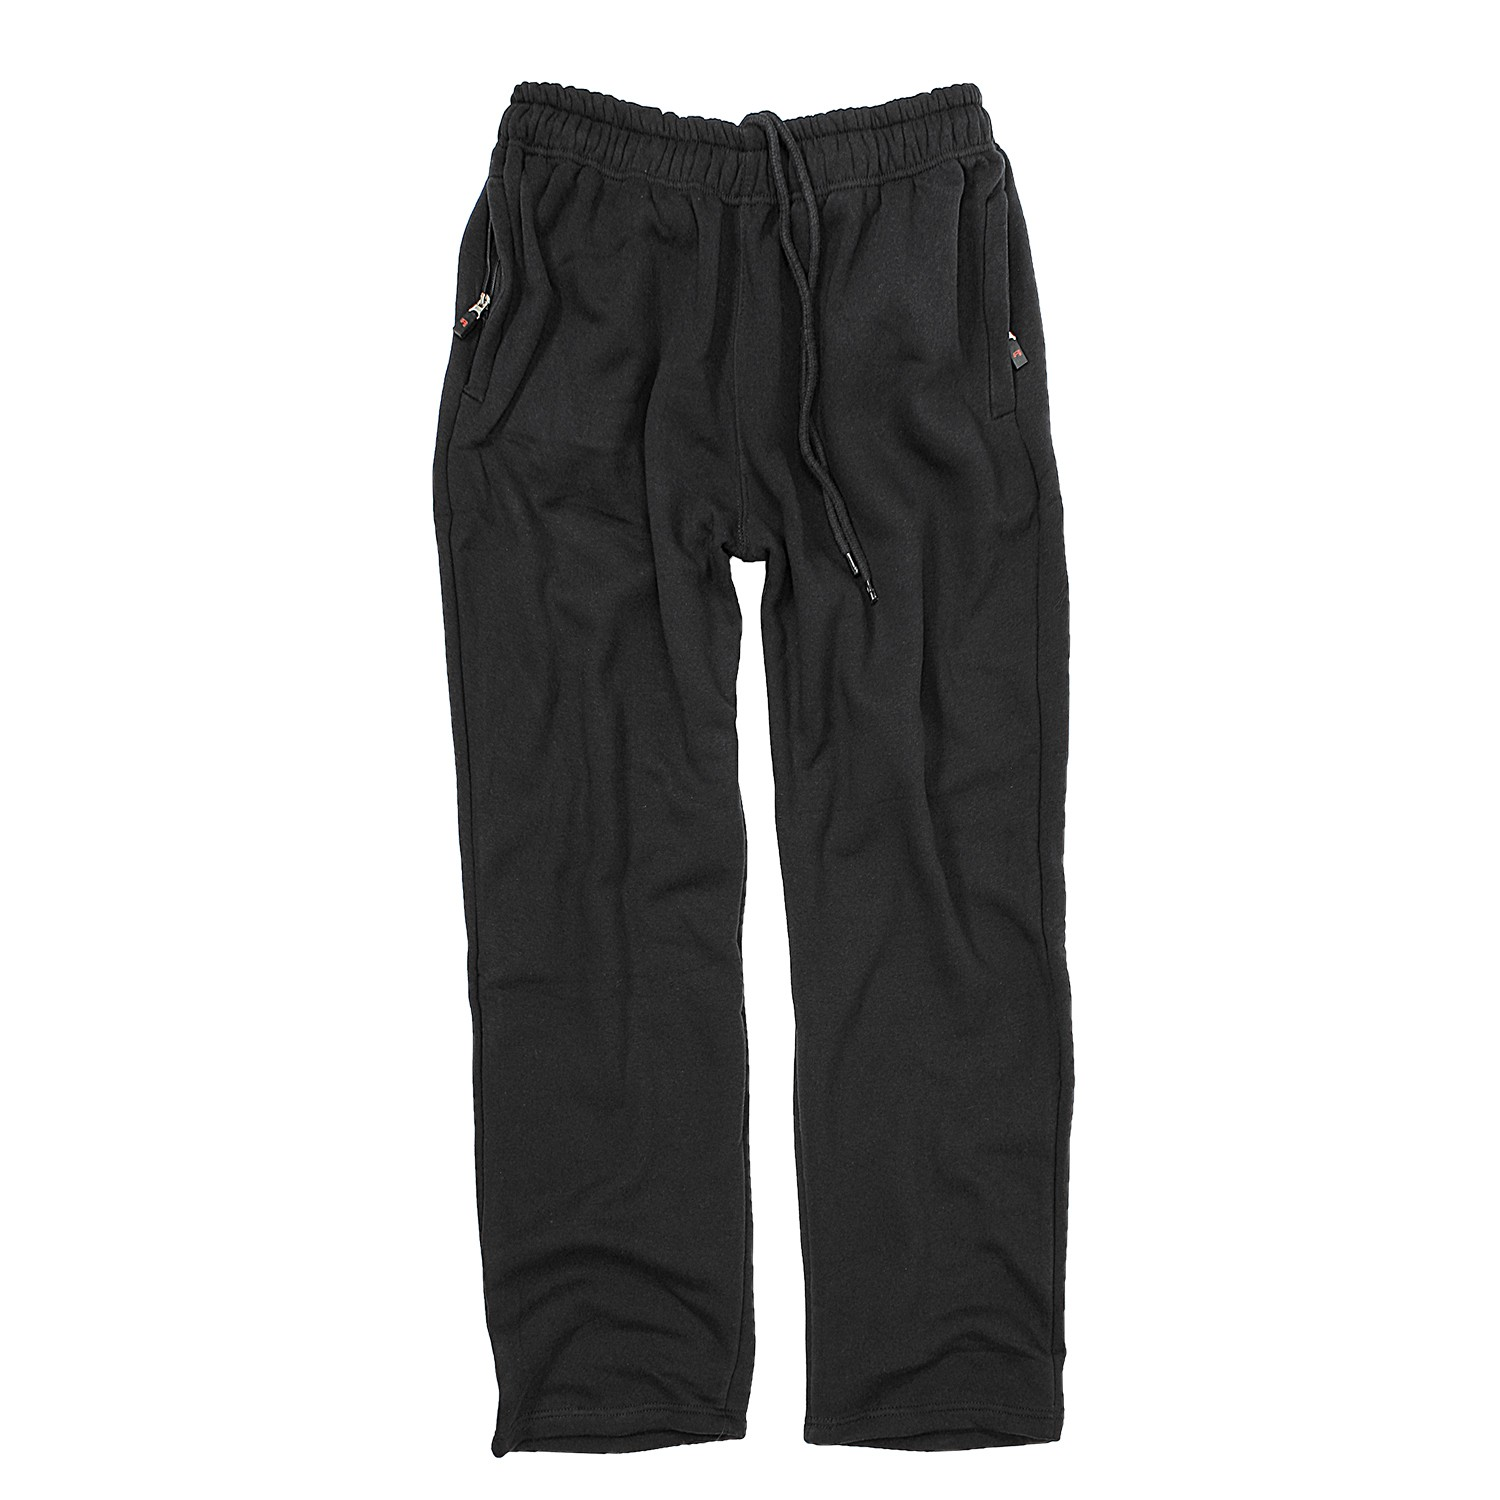 Detail Image to Jogging trousers model ALBERT in black by Rockford in oversizes until 8XL